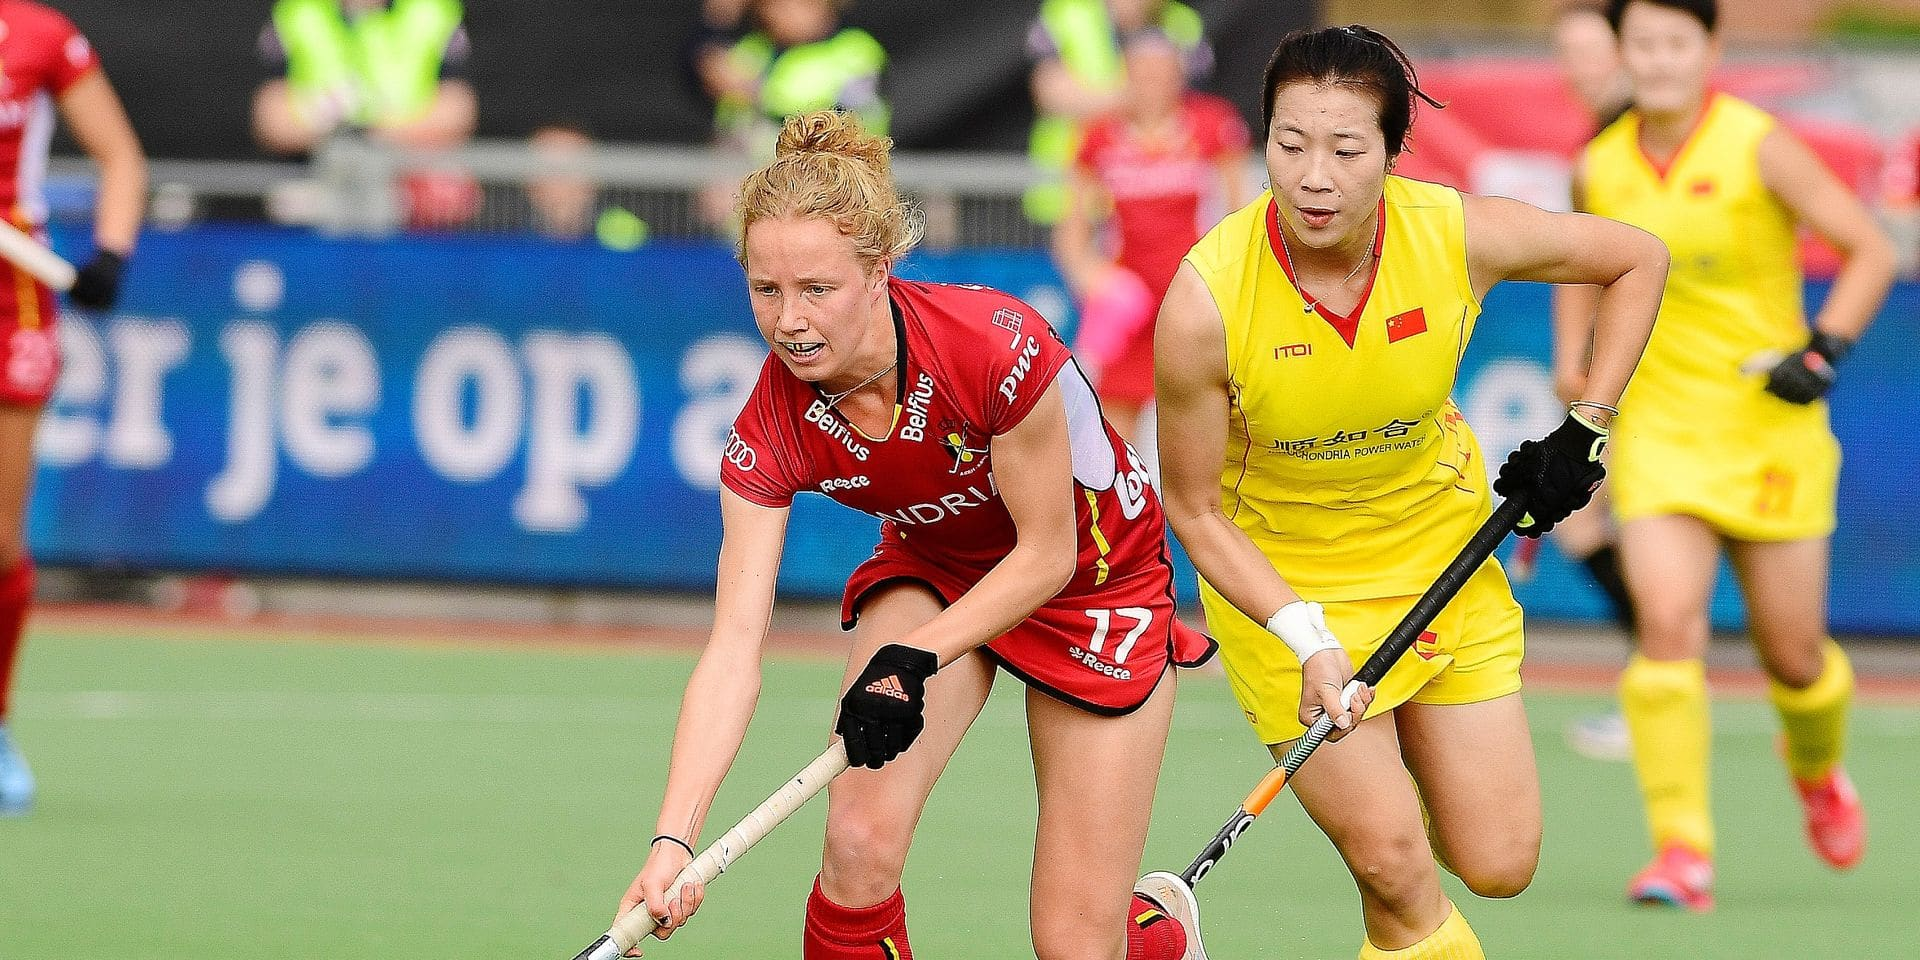 Belgium's Michelle Struijk pictured in action during a hockey game between Belgium national team Red Panthers and China, Sunday 07 April 2019 in Brussels, game 5/16 of the FIH Pro League women's competition. BELGA PHOTO LAURIE DIEFFEMBACQ